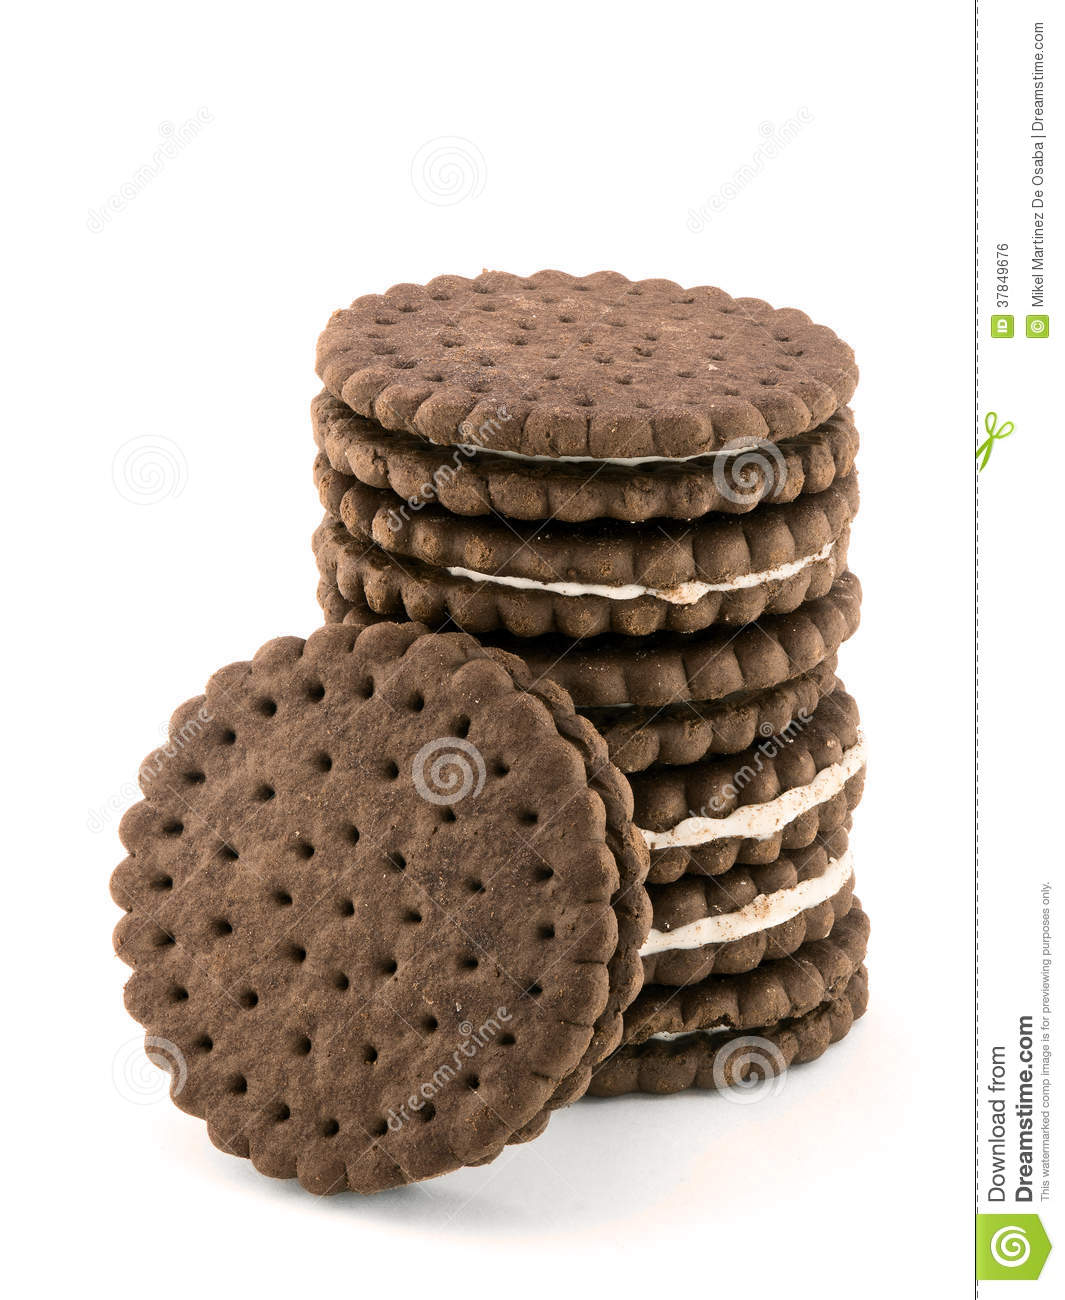 Pile of chocolate cream cookies isolated on white